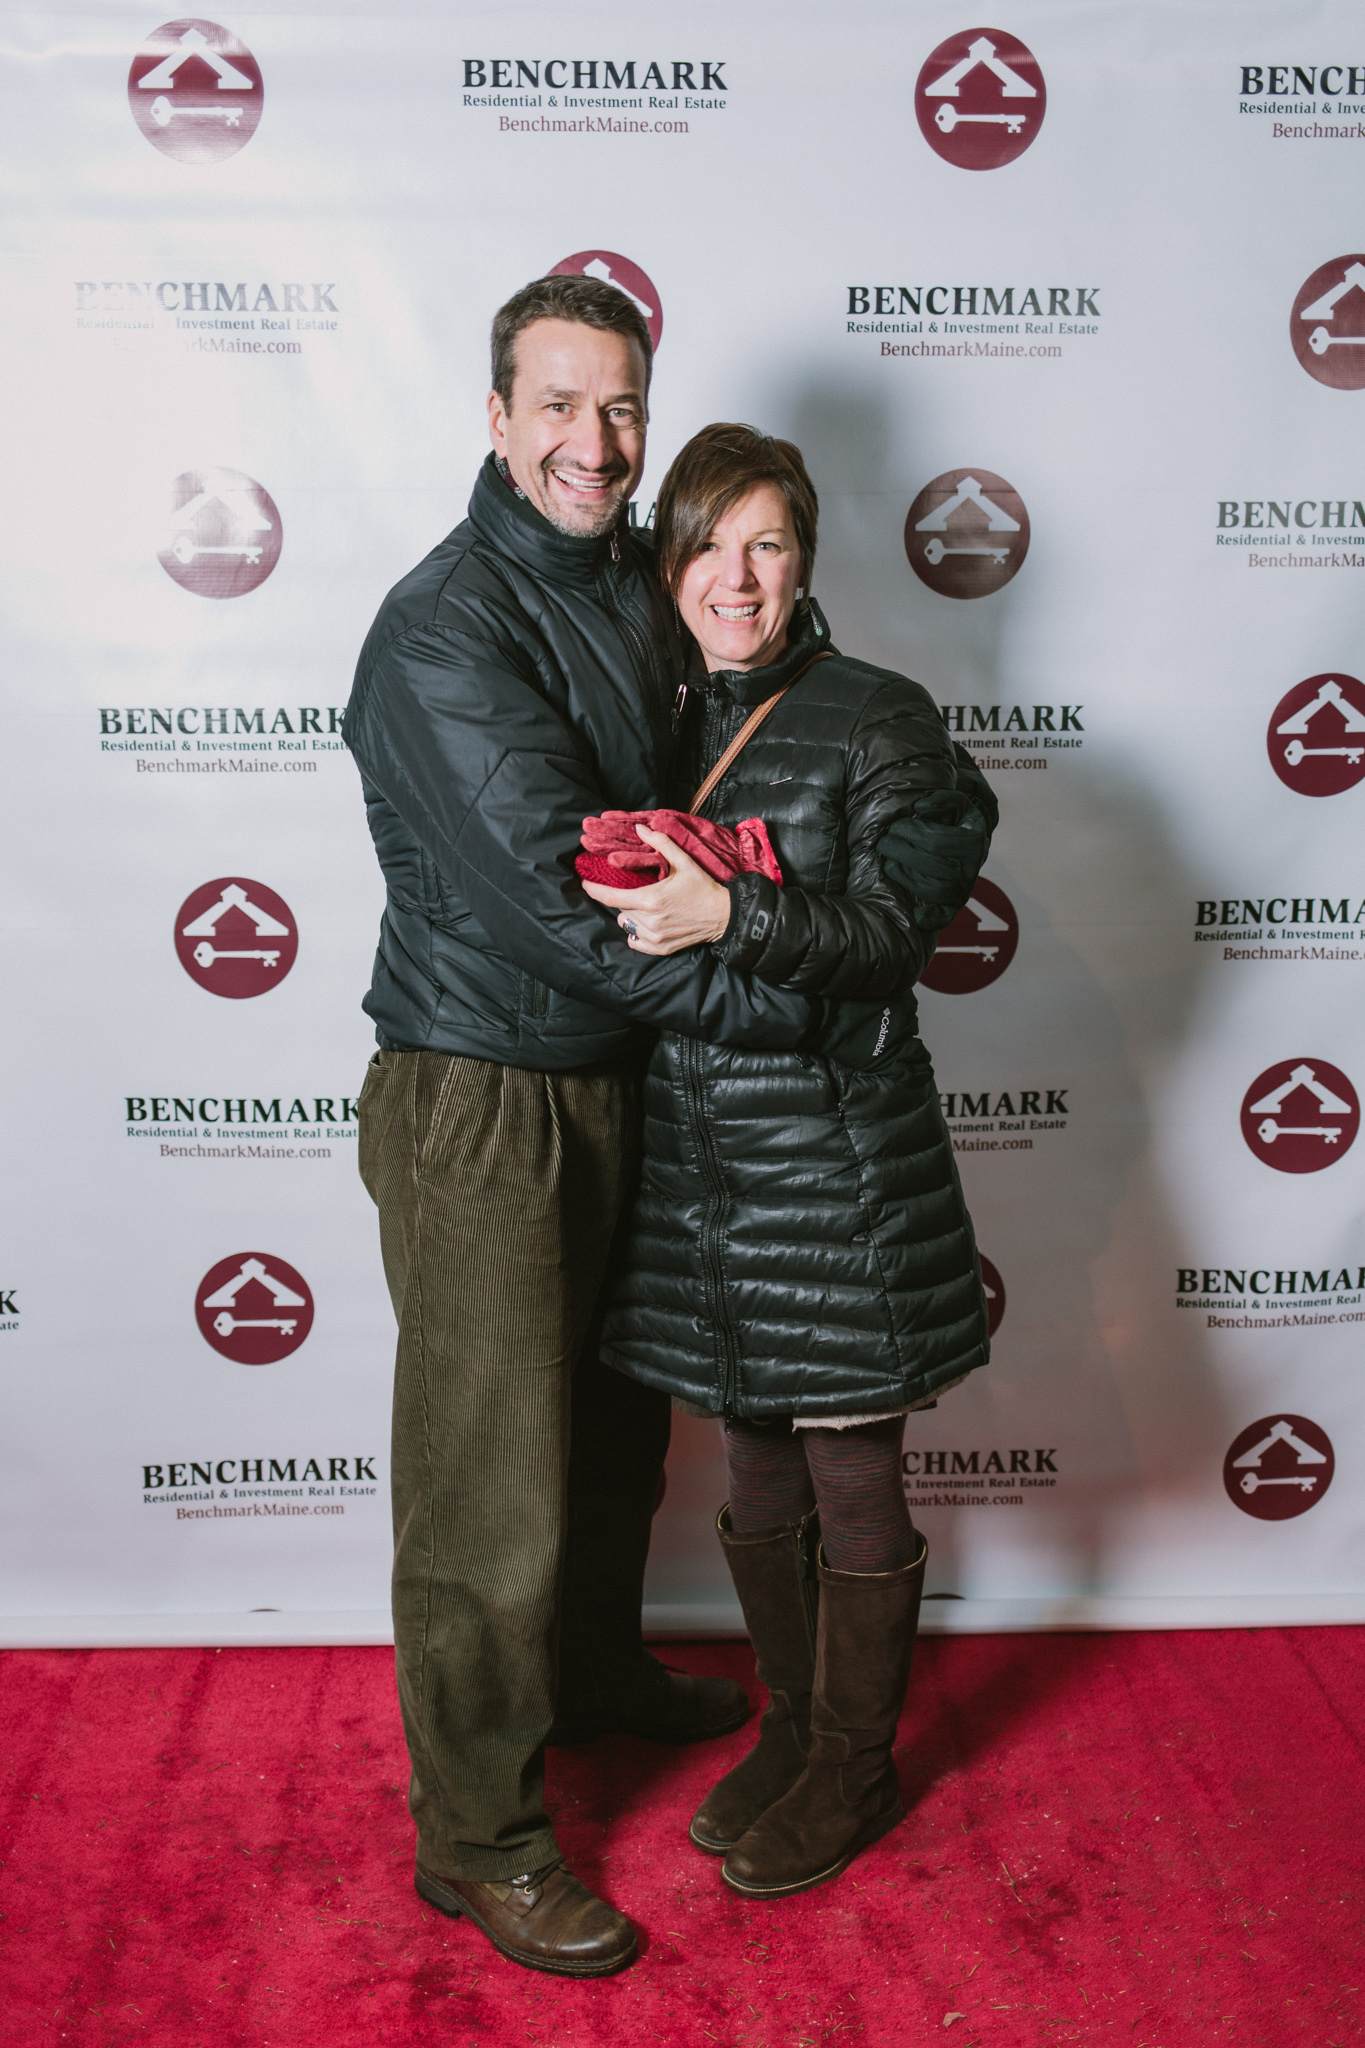 Benchmark_Holiday_Party_SR-048.jpg